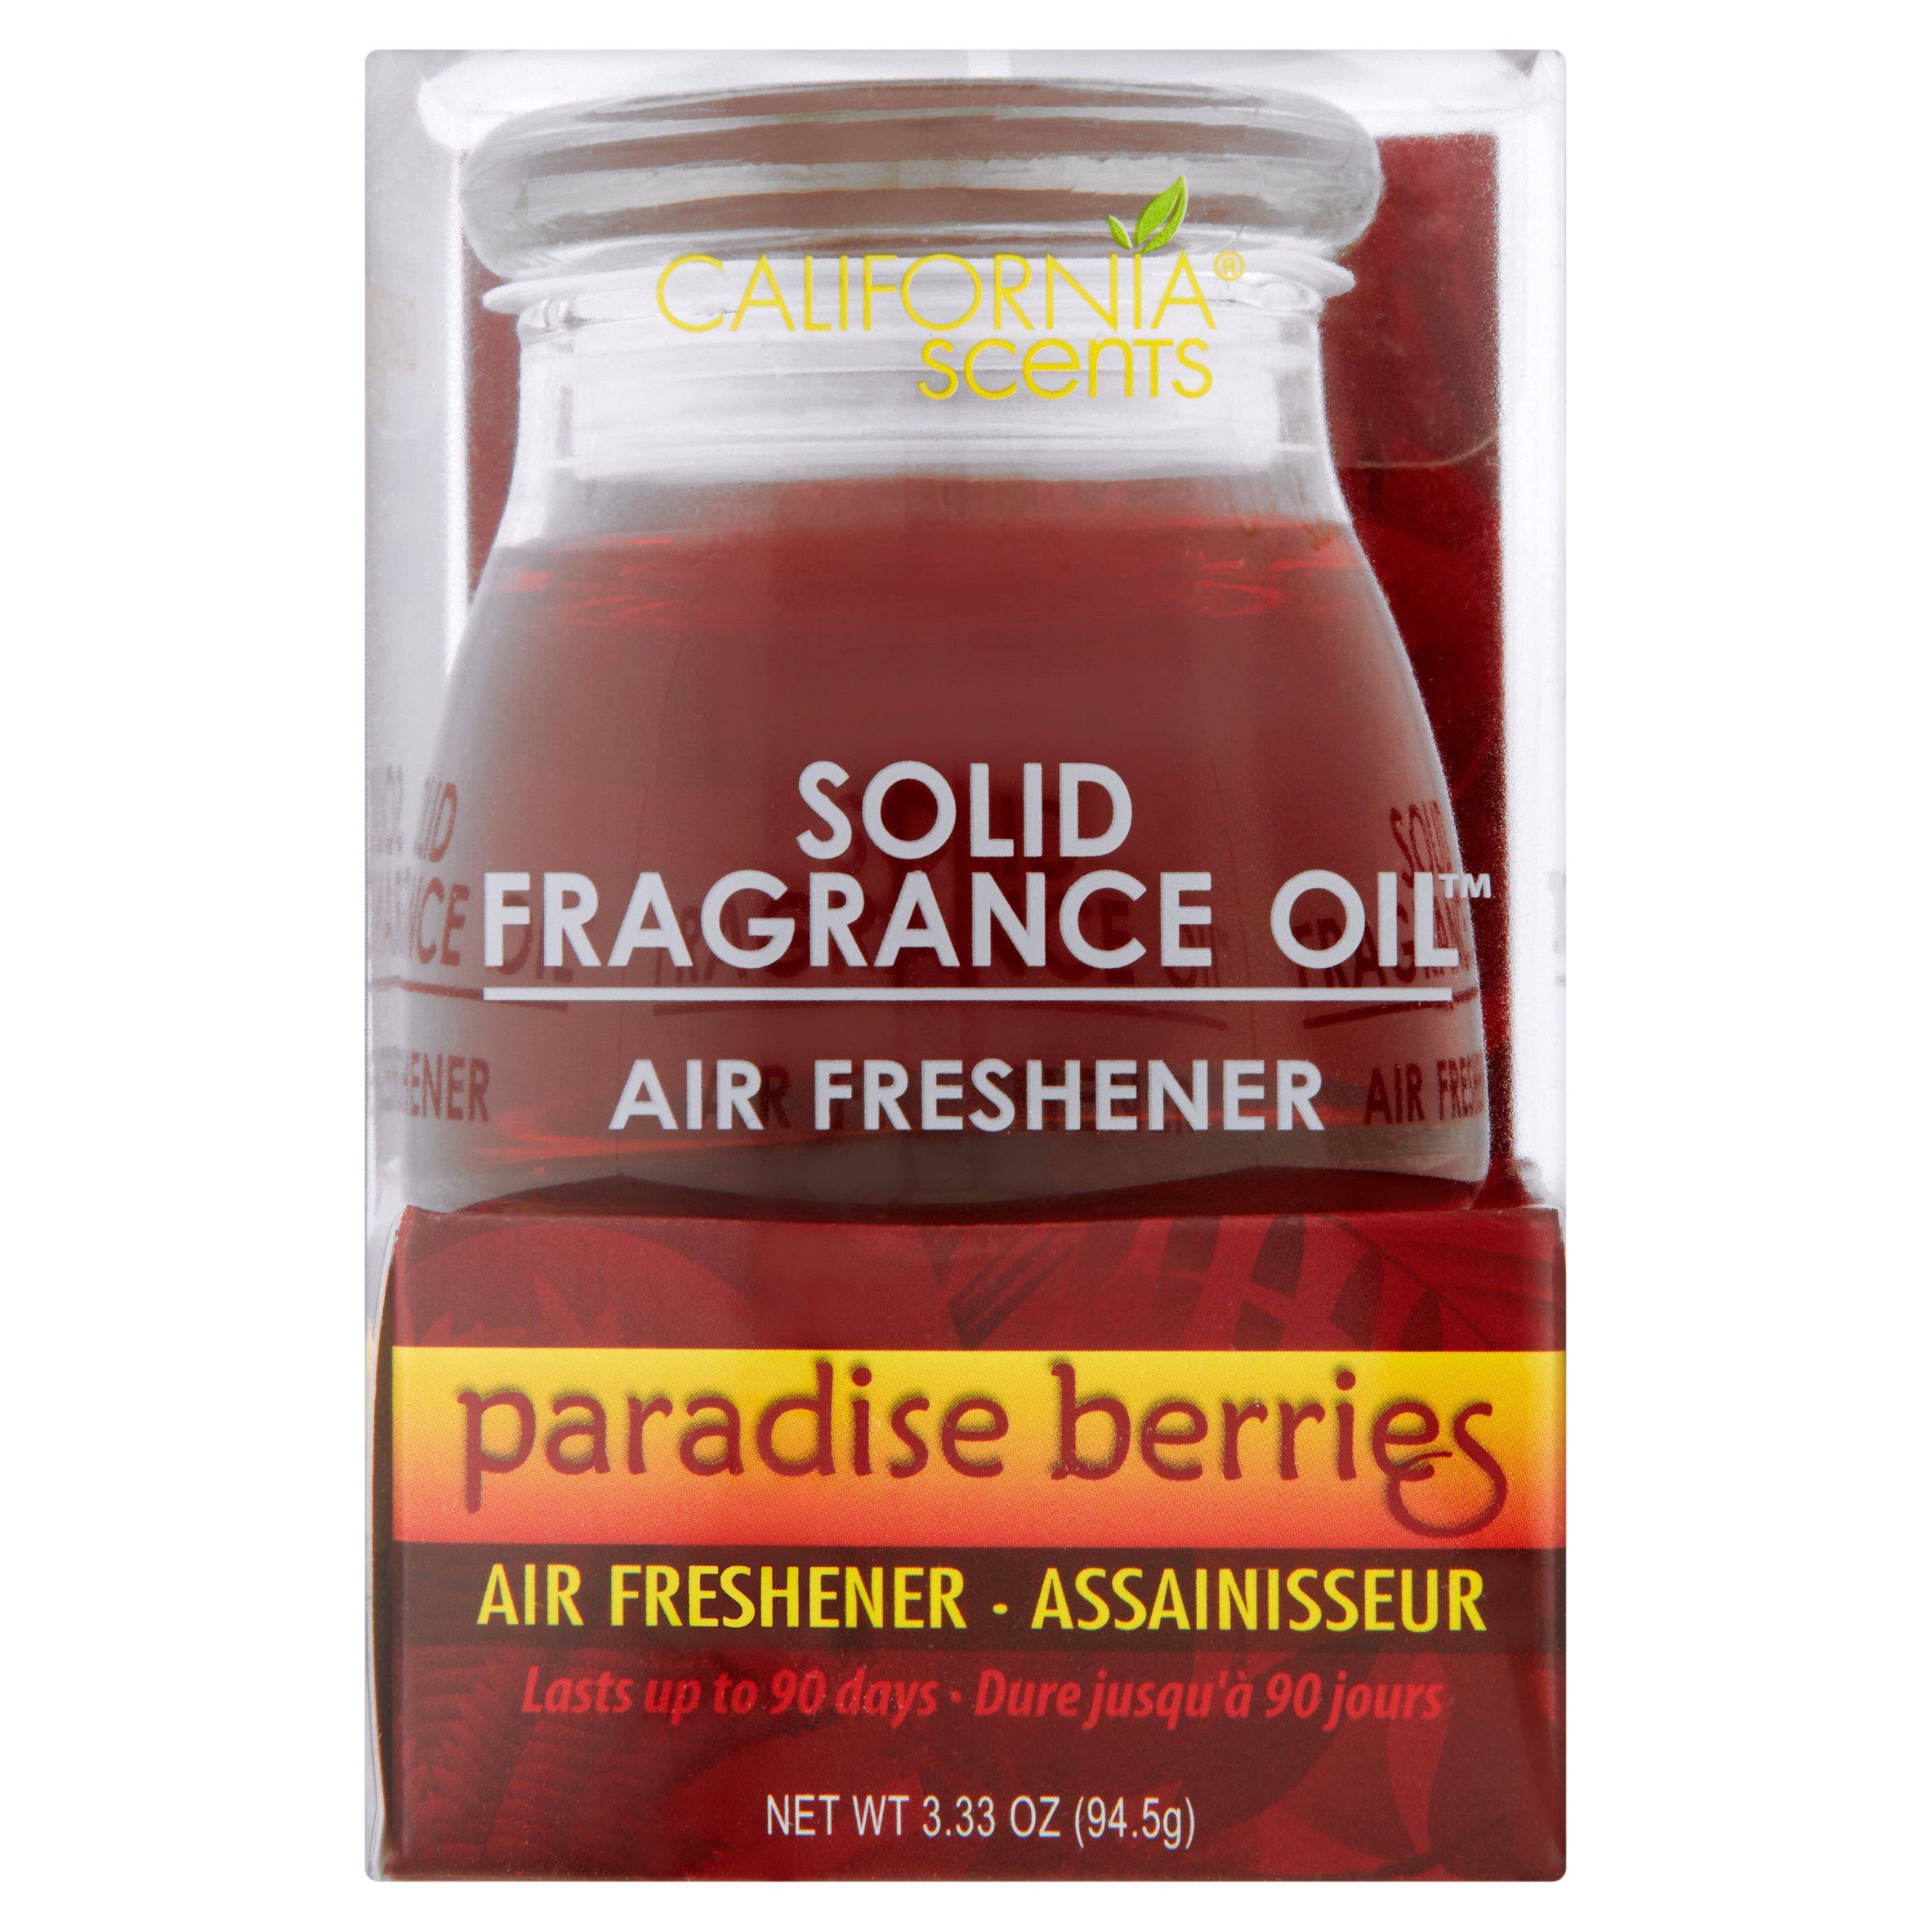 California Scents Solid Fragrance Oil Paradise Berries Air Freshener, 3.33 oz, 6 pack